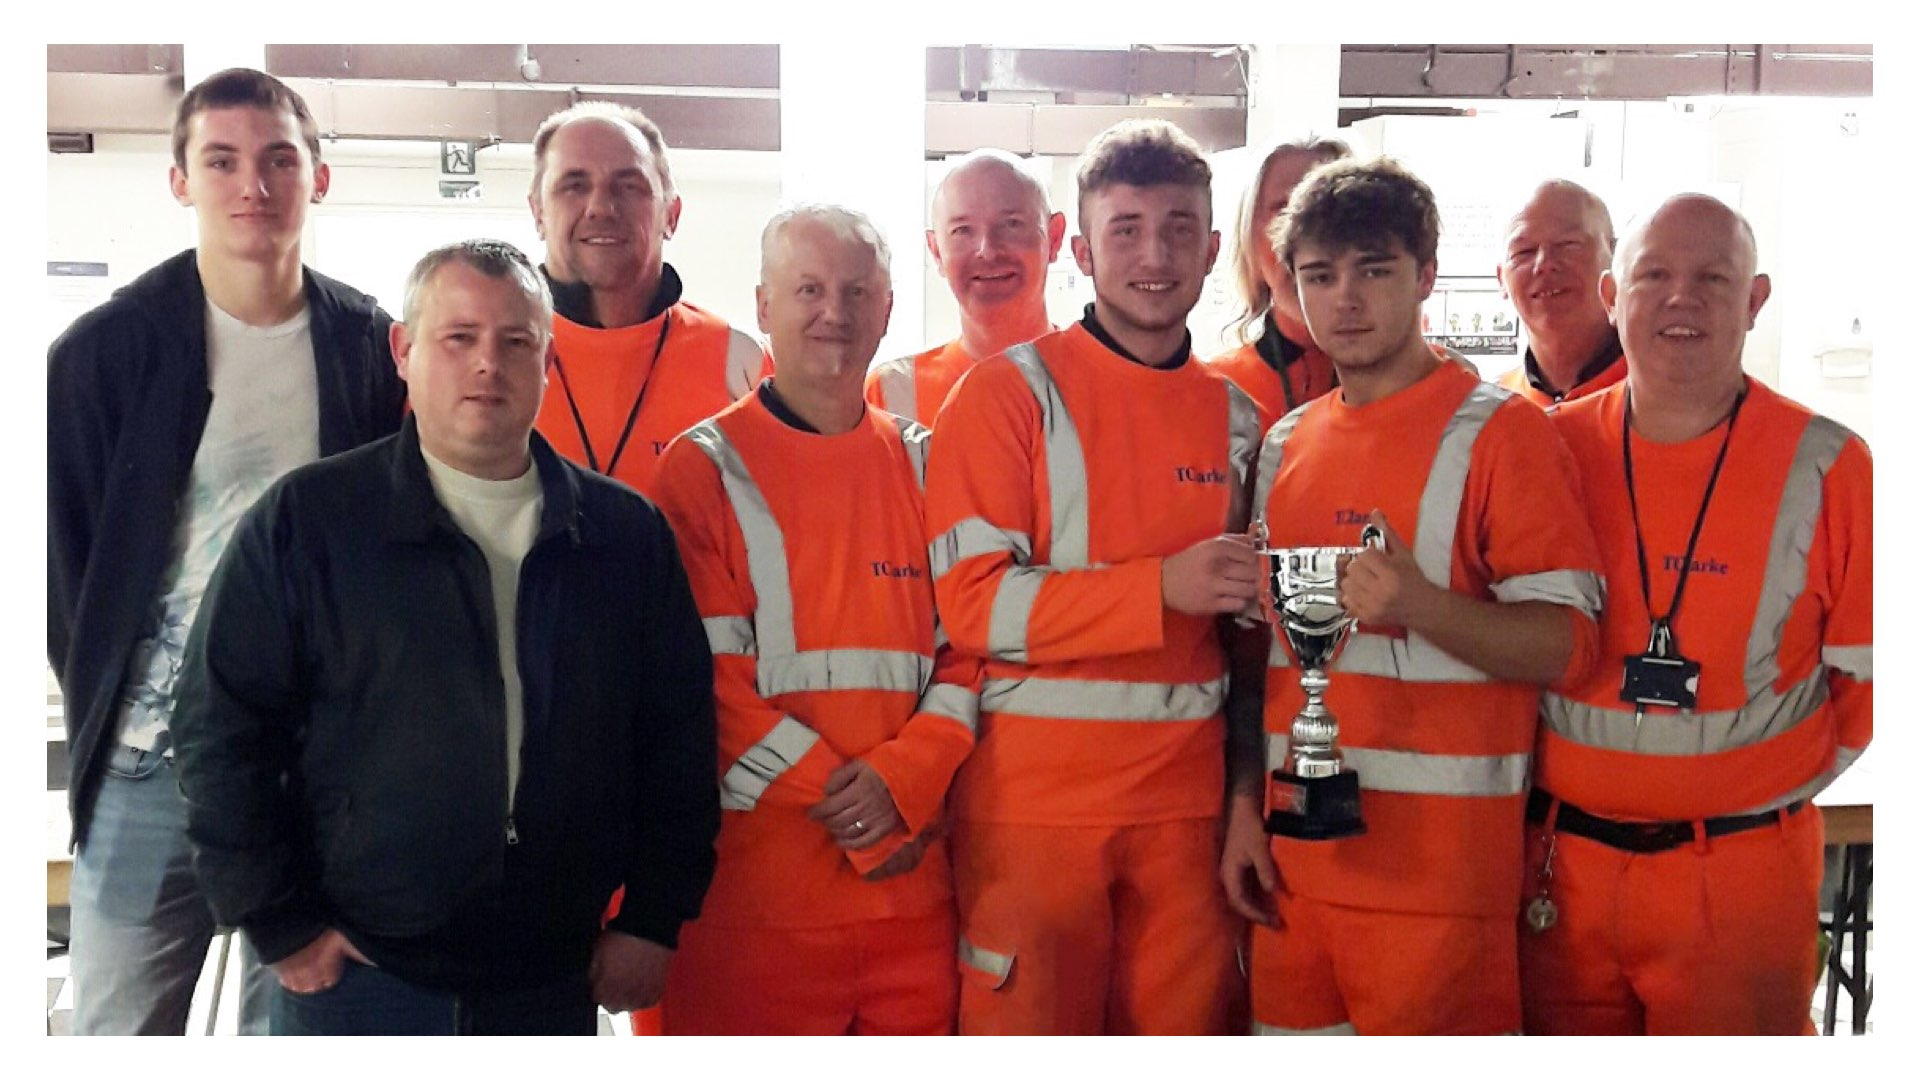 Paddington Bakerloo Link team wins Safety Cup